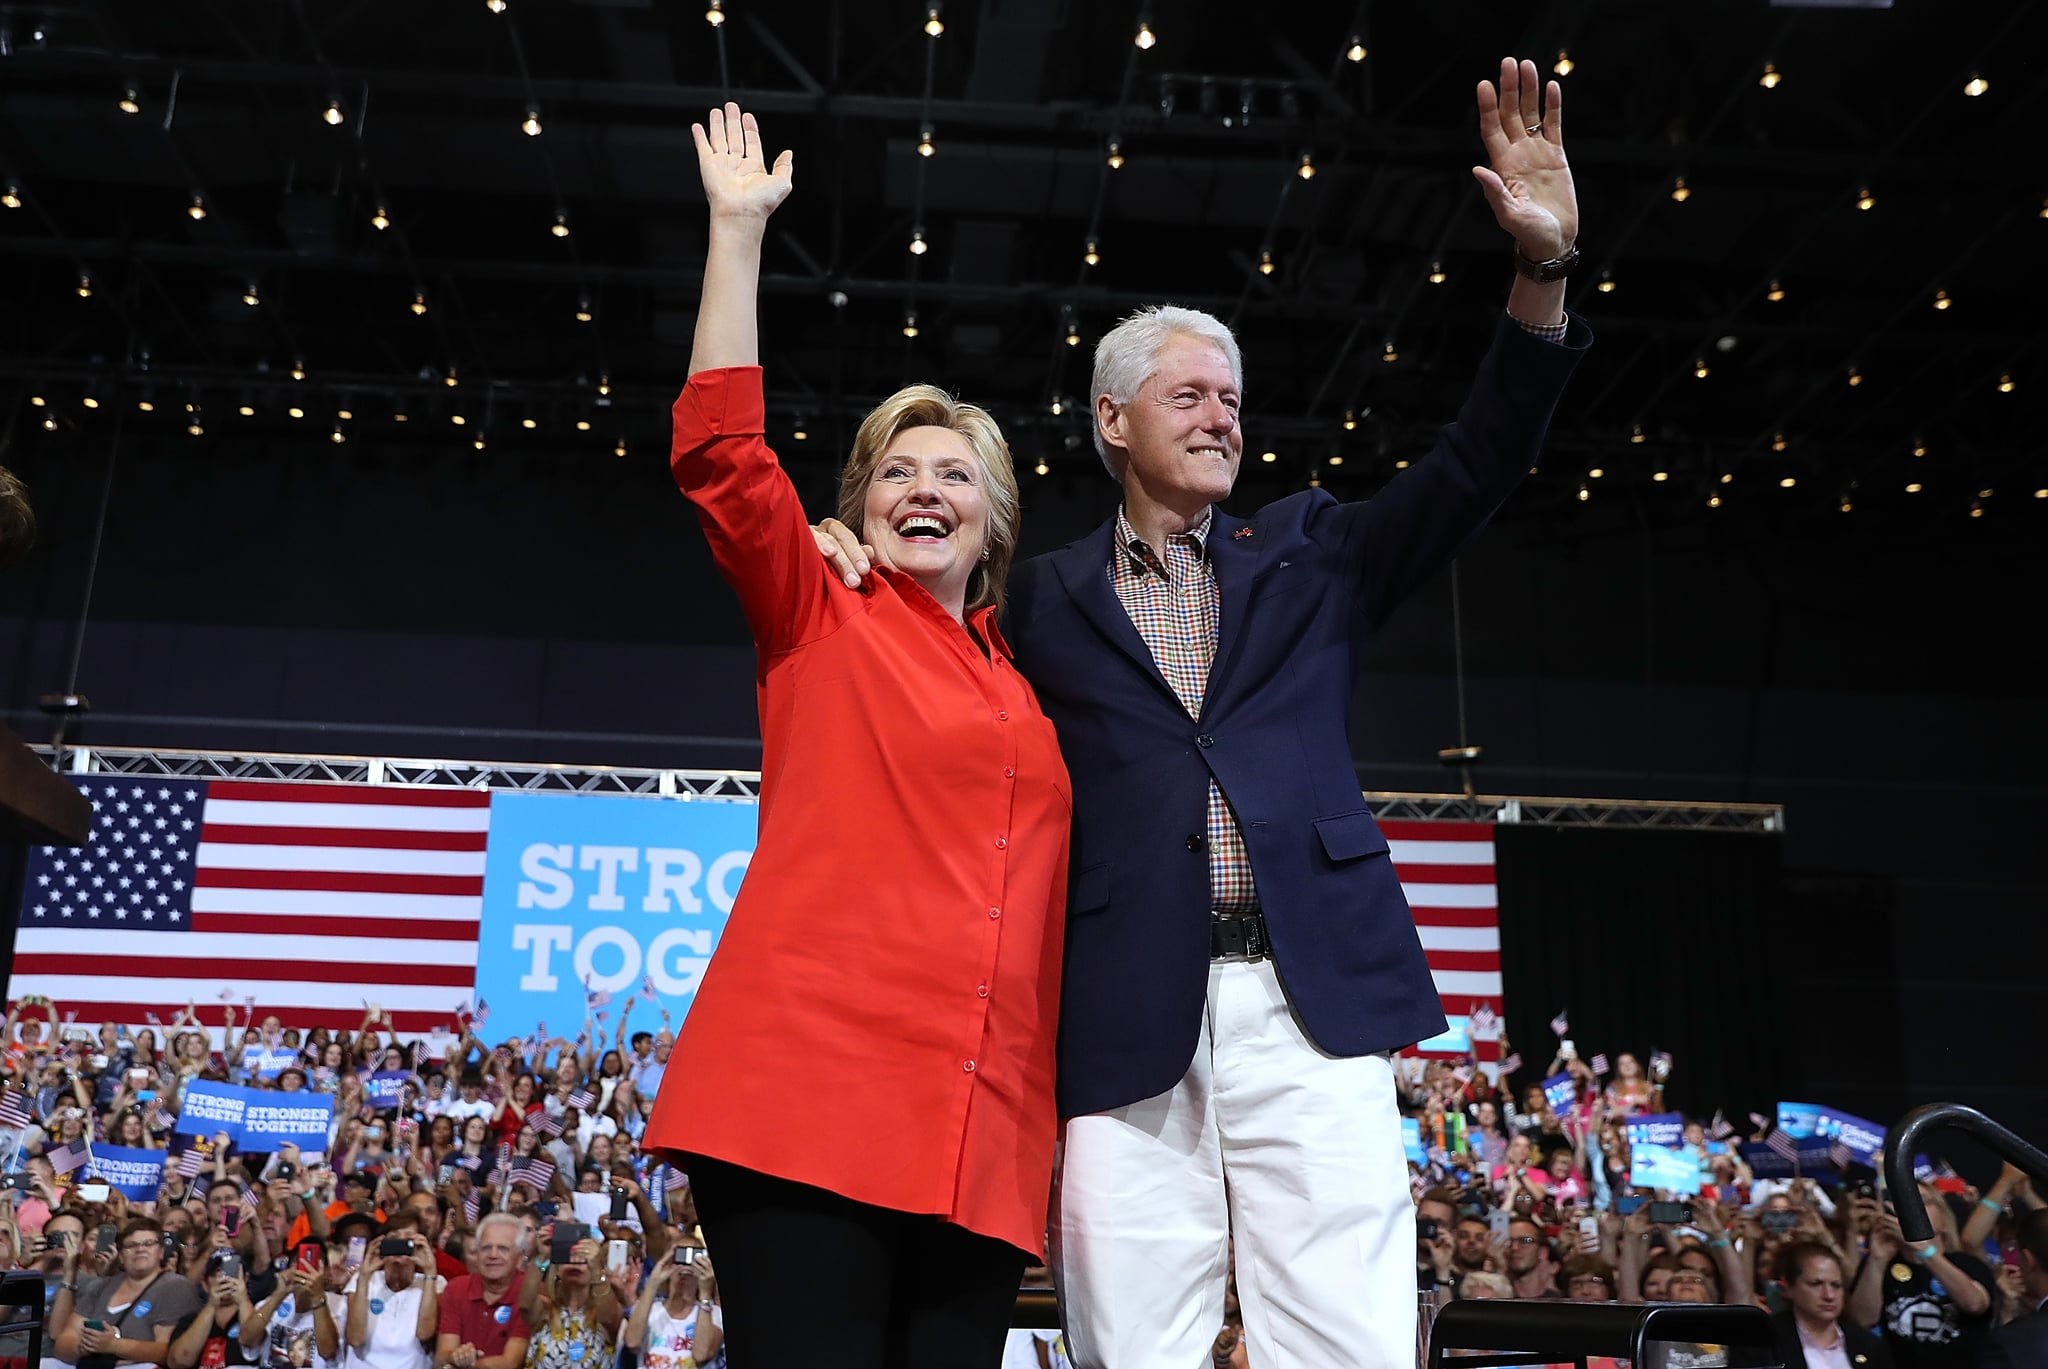 PITTSBURGH, PA - JULY 30:  Democratic presidential nominee former Secretary of State Hillary Clinton and her husband former U.S. president Bill Clinton greet supporters during a campaign rally with democratic vice presidential nominee U.S. Sen Tim Kaine (D-VA) at the David L. Lawrence Convention Center on July 30, 2016 in Pittsburgh, Pennsylvania. Hillary Clinton and Tim Kaine are continuing their three-day bus tour through Pennsylvania and Ohio.  (Photo by Justin Sullivan/Getty Images)